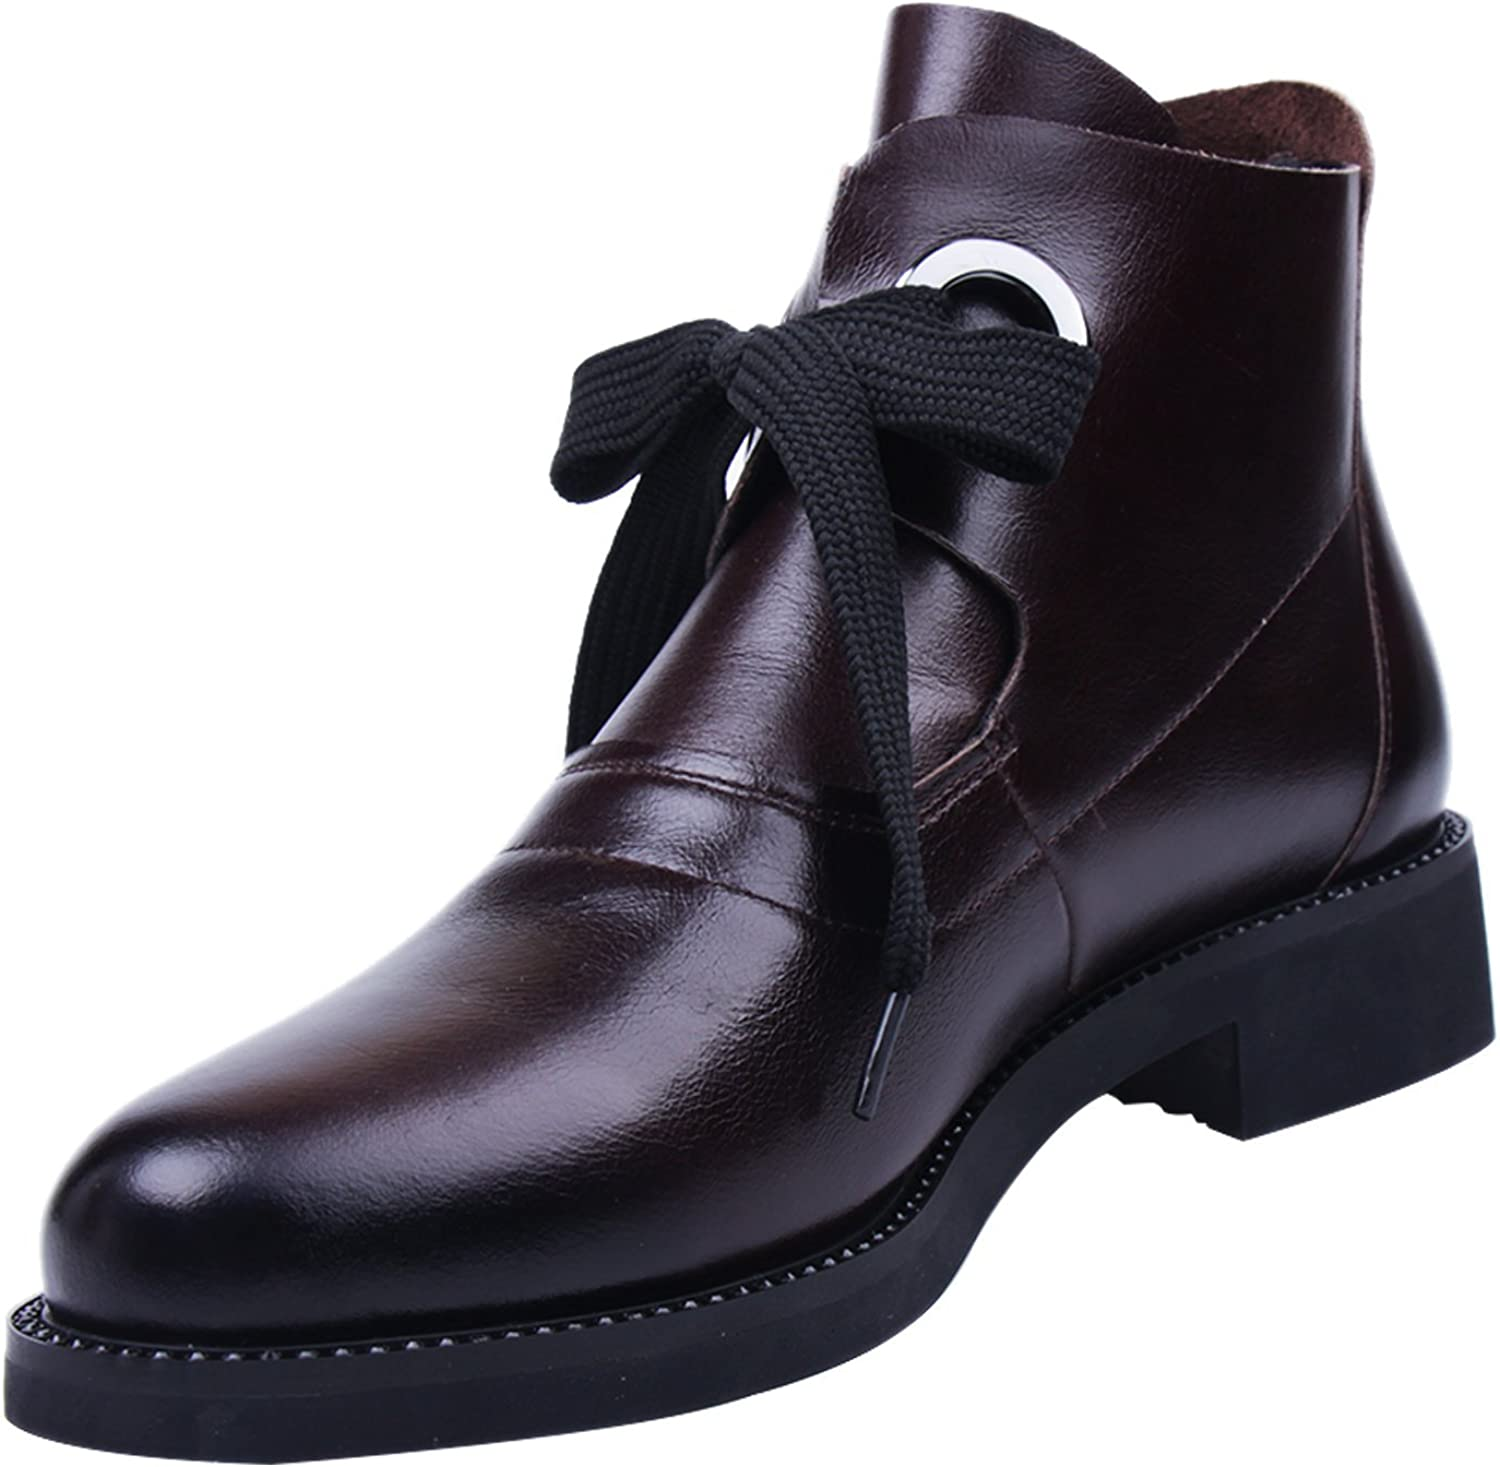 MARHEE Women's Ankle Leather Boots Slip Casual Flat Fashion Travel Party Martin Short Leather Boots